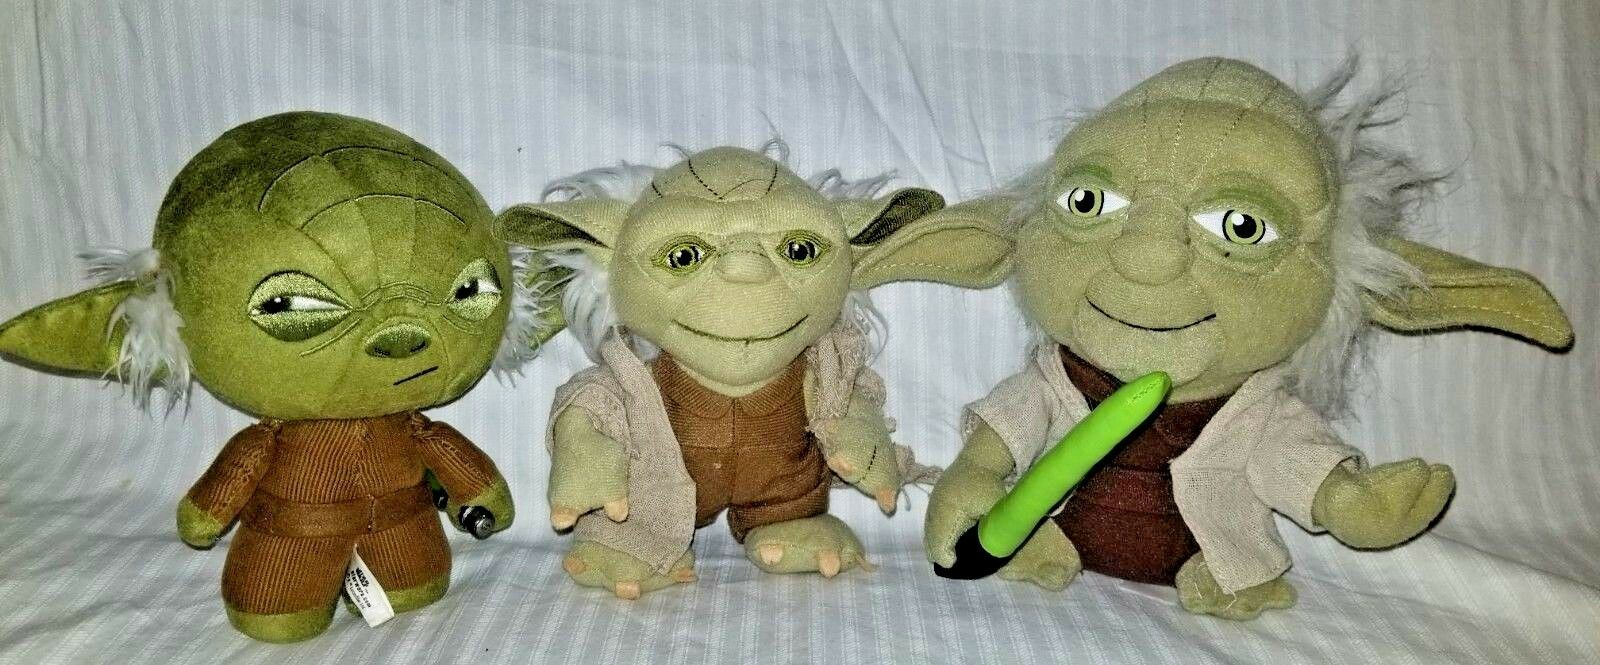 Star Wars Yoda Plush Dolls. Lot of 3